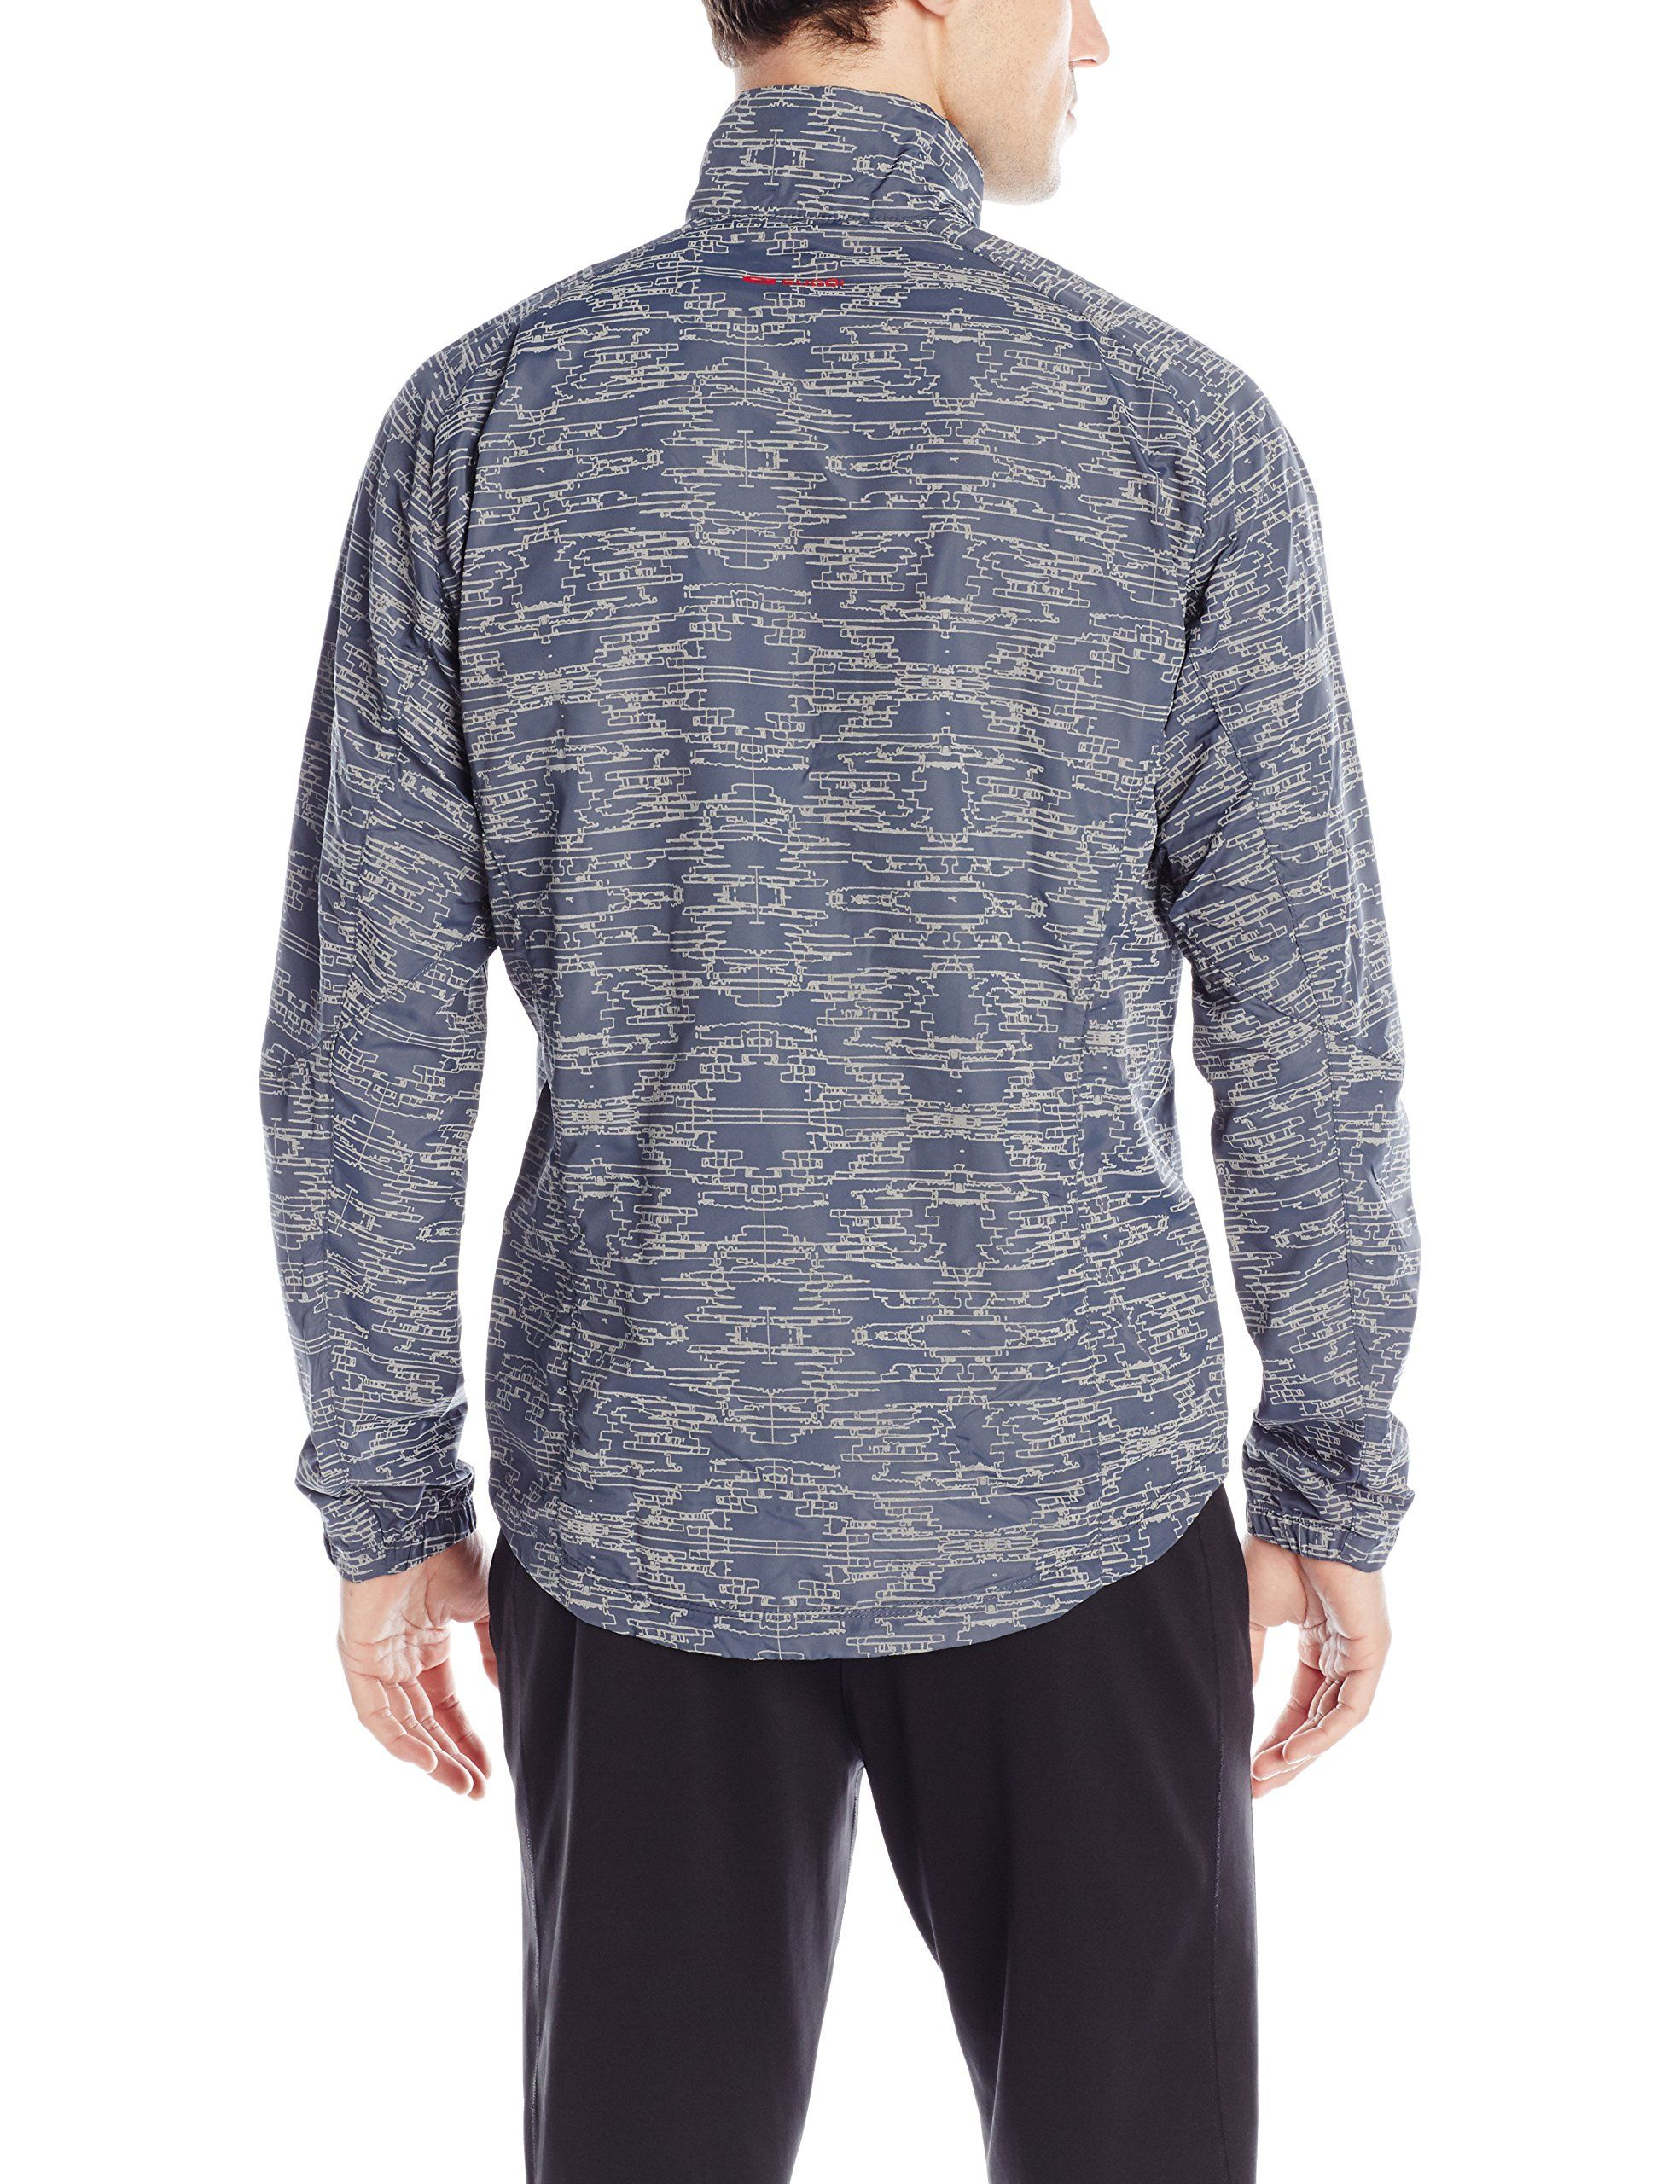 Sugoi Mens Zap Run Jacket Coal Blue Large Details Can Be Found By Clicking On The Image This Is An Affiliate Link With Images Running Equipment Men Sweater Jackets